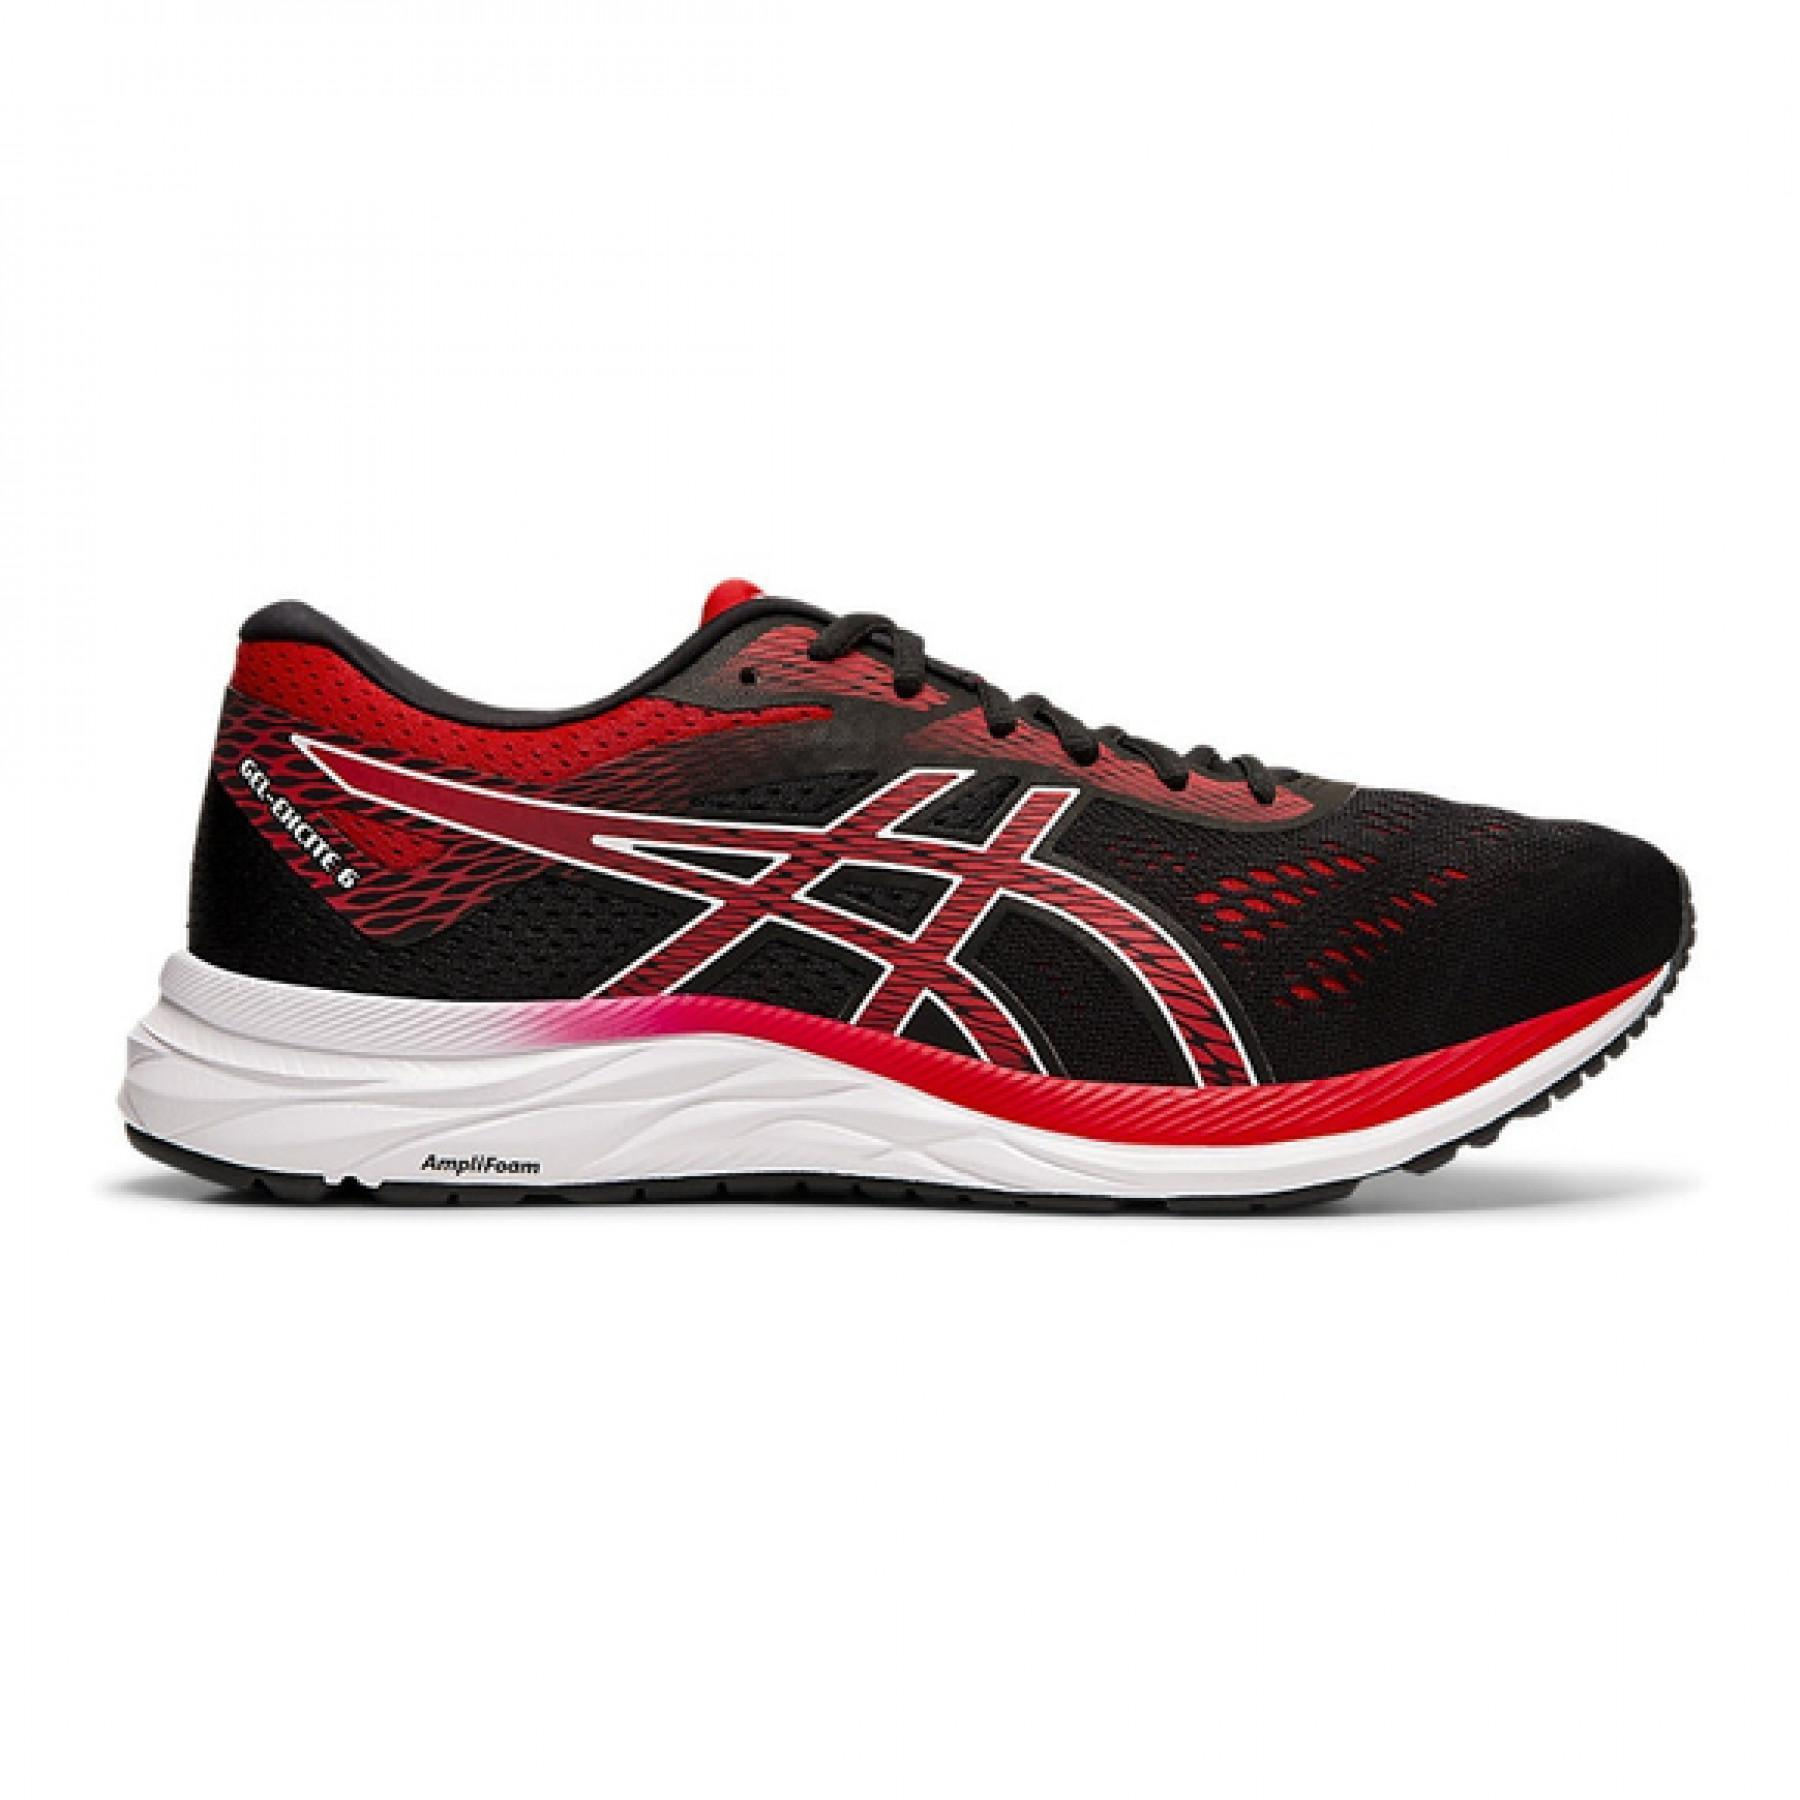 Asics Gel-excite 6 Shoes